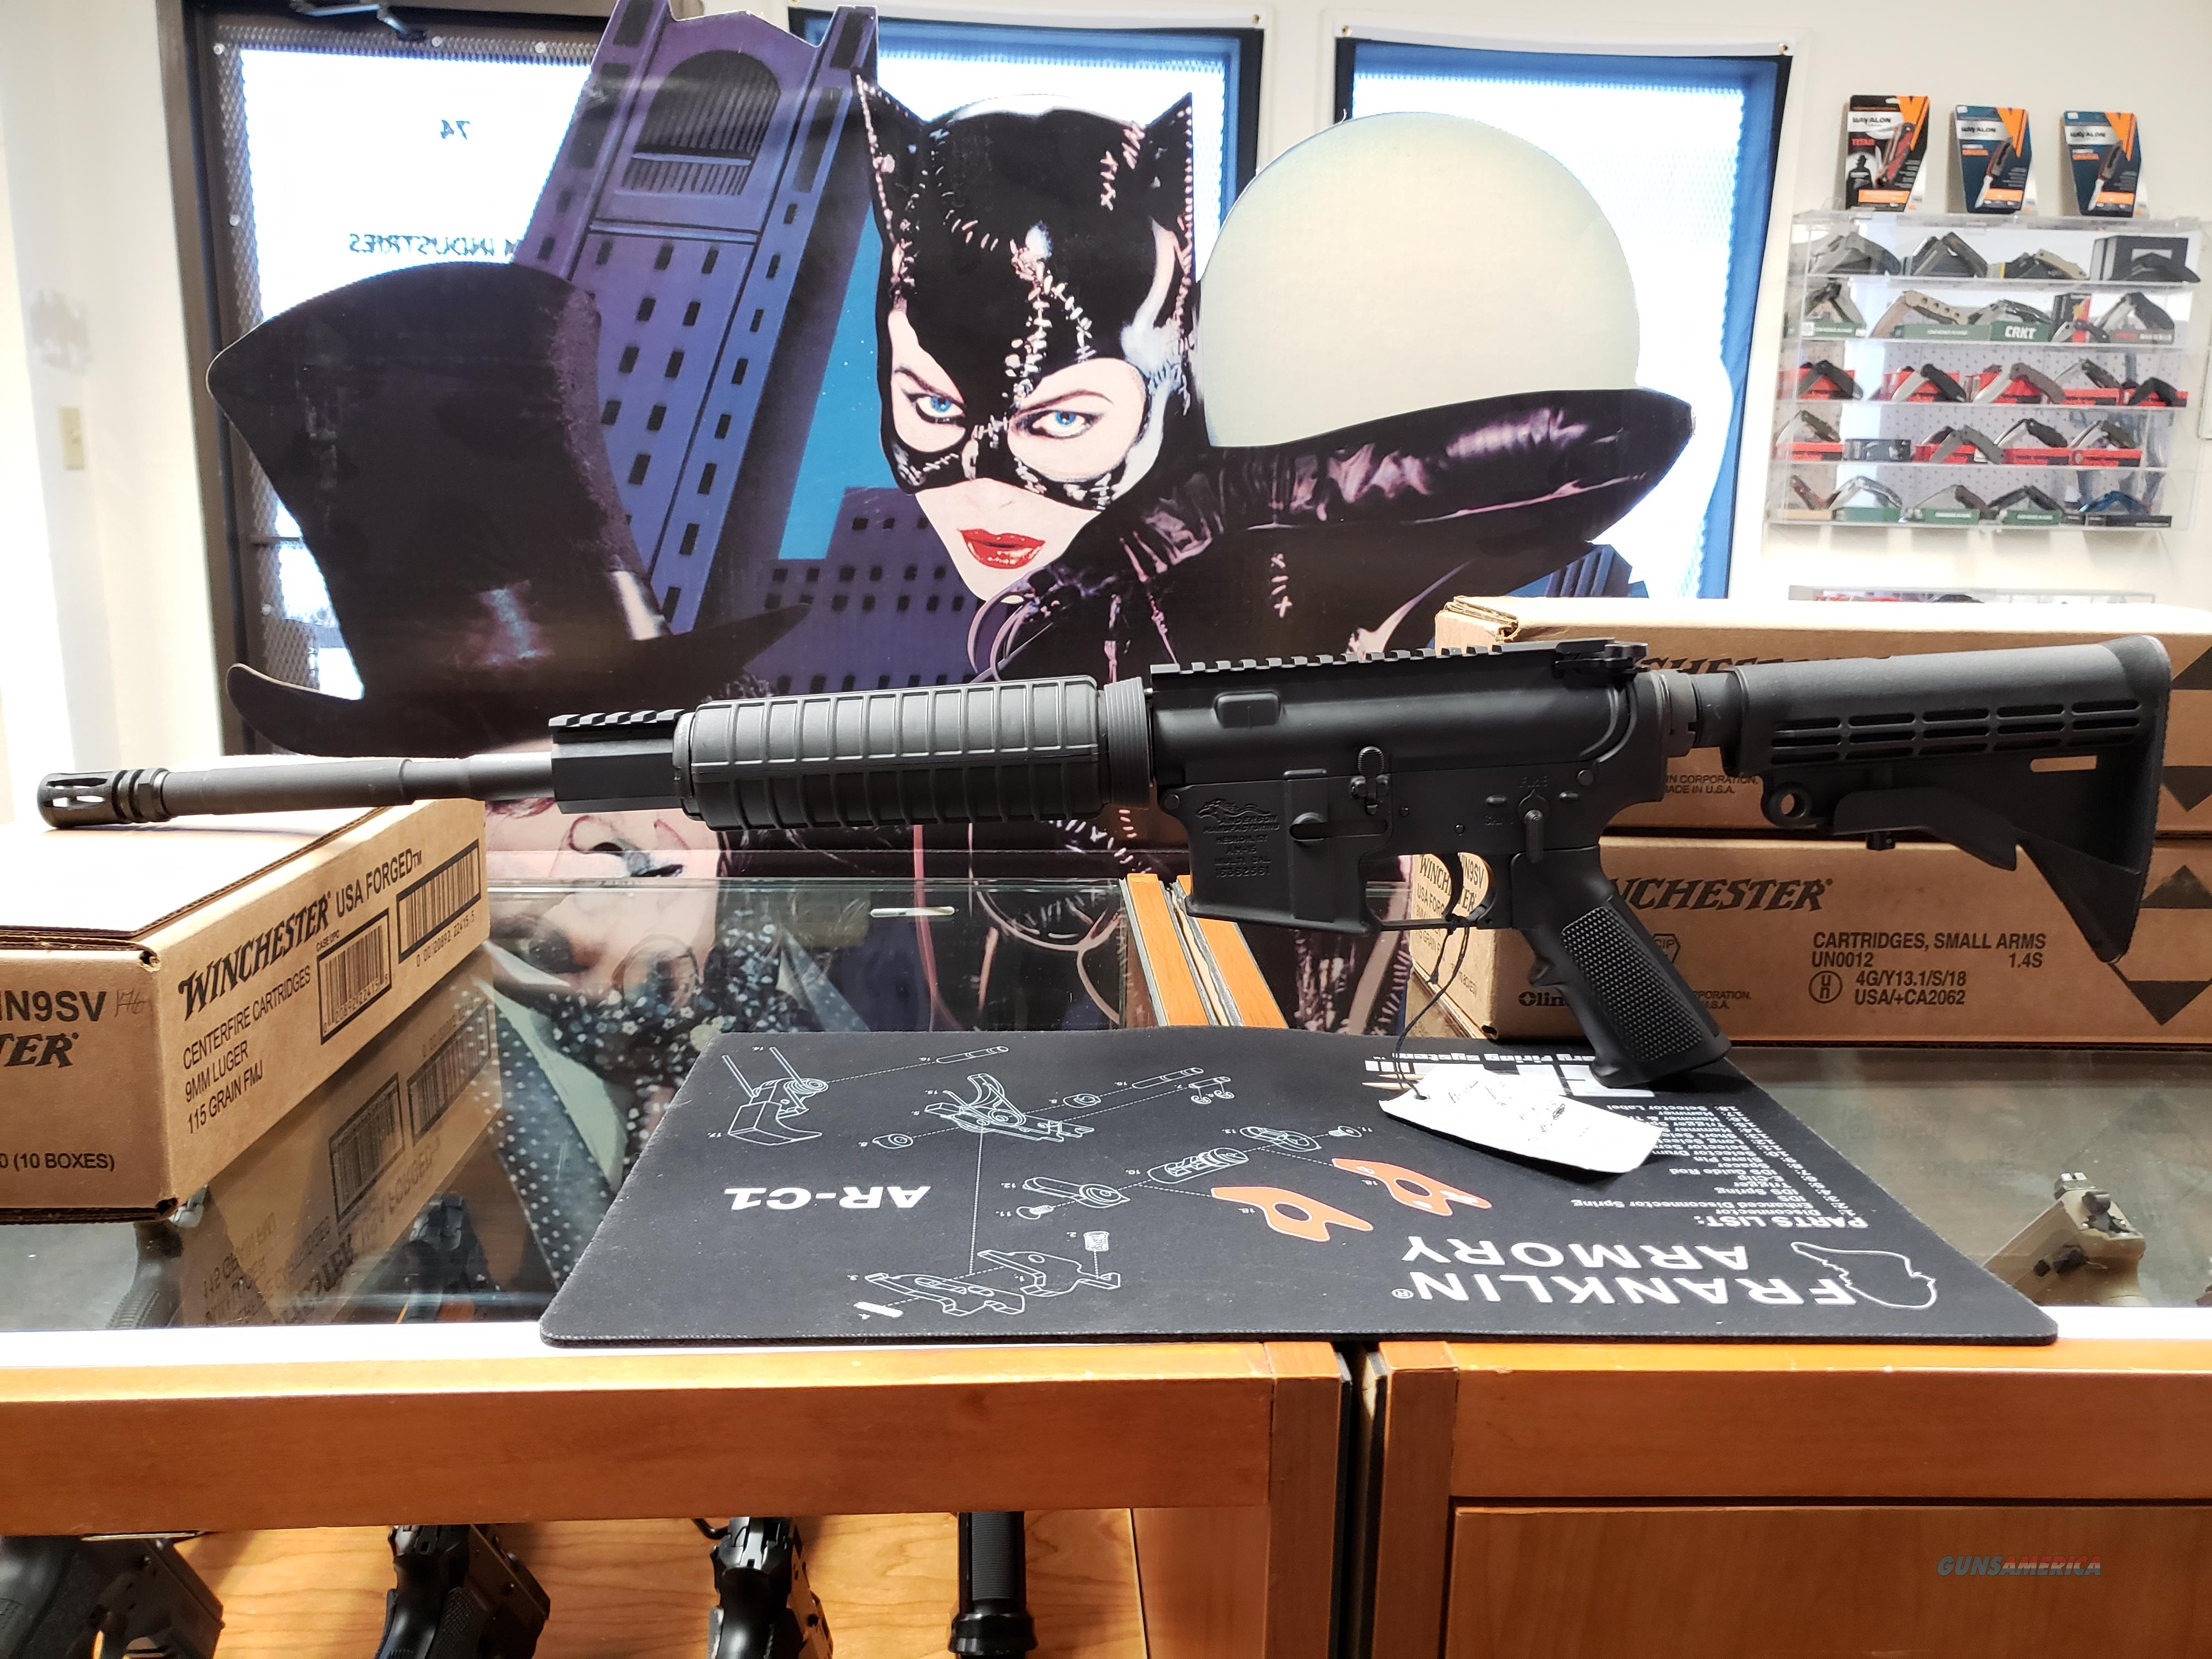 Anderson Mfg. AM-15 ORC 5.56  Guns > Rifles > AR-15 Rifles - Small Manufacturers > Complete Rifle